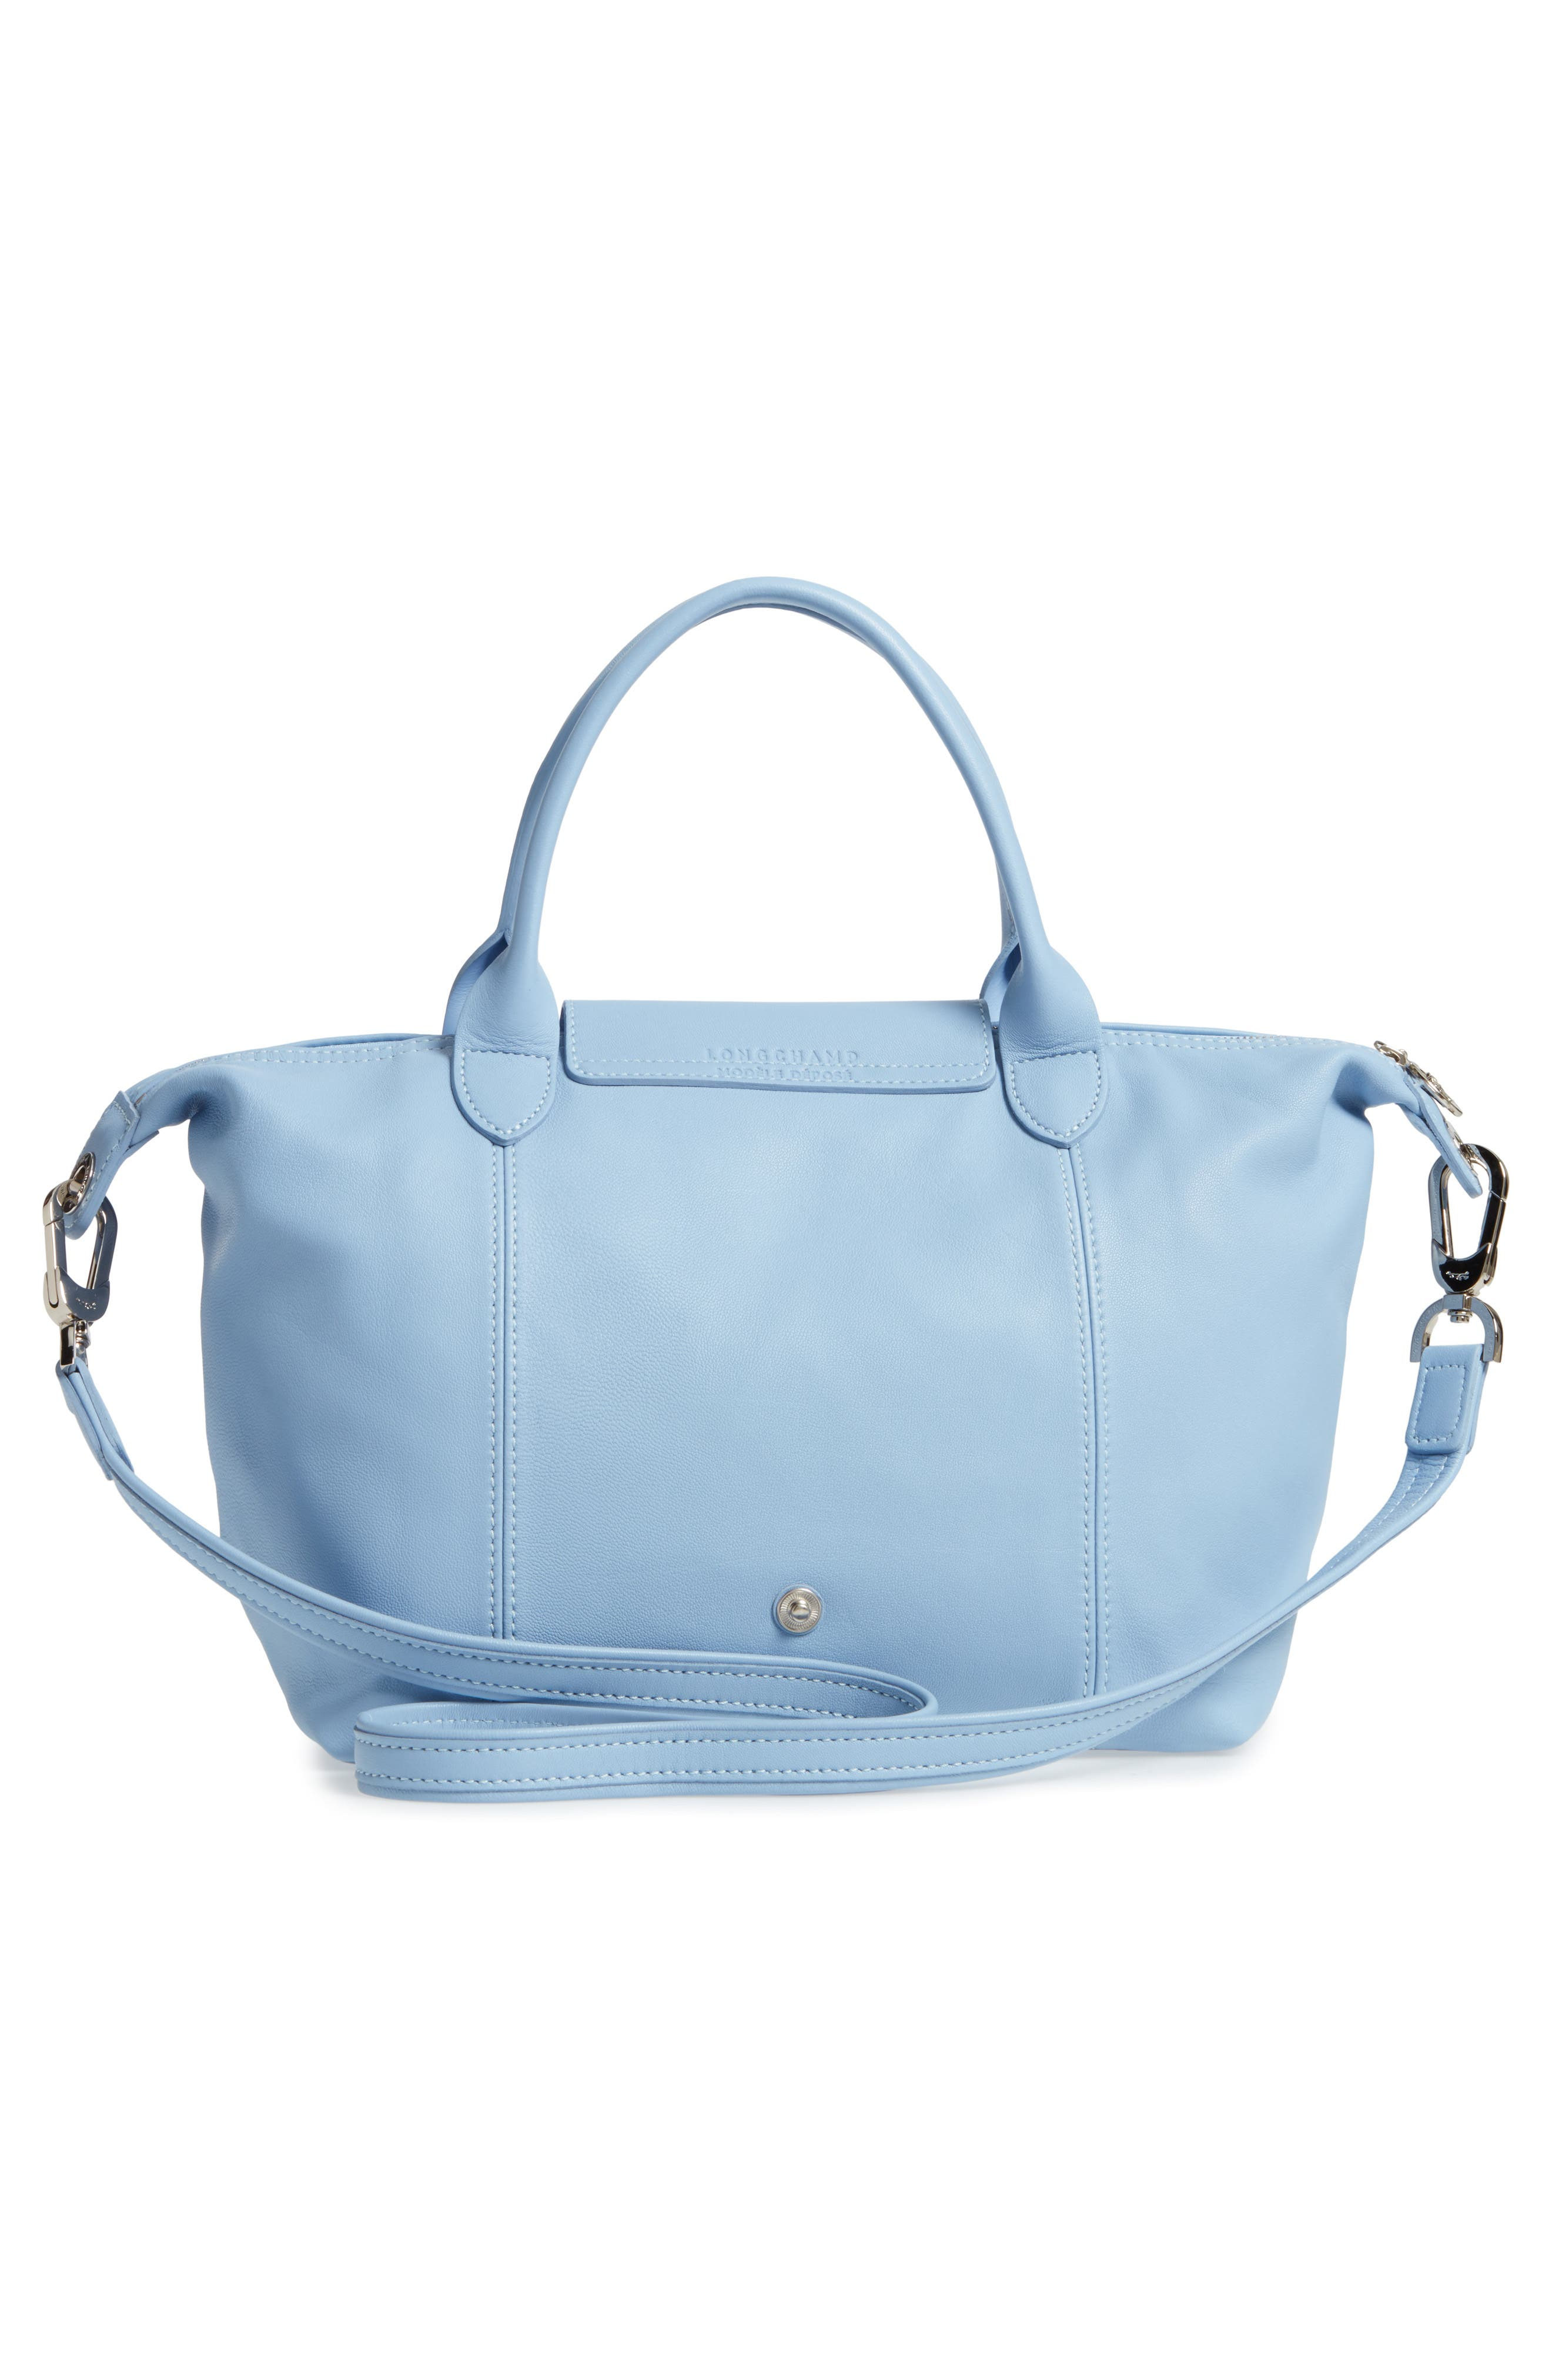 Small 'Le Pliage Cuir' Leather Top Handle Tote,                             Alternate thumbnail 45, color,